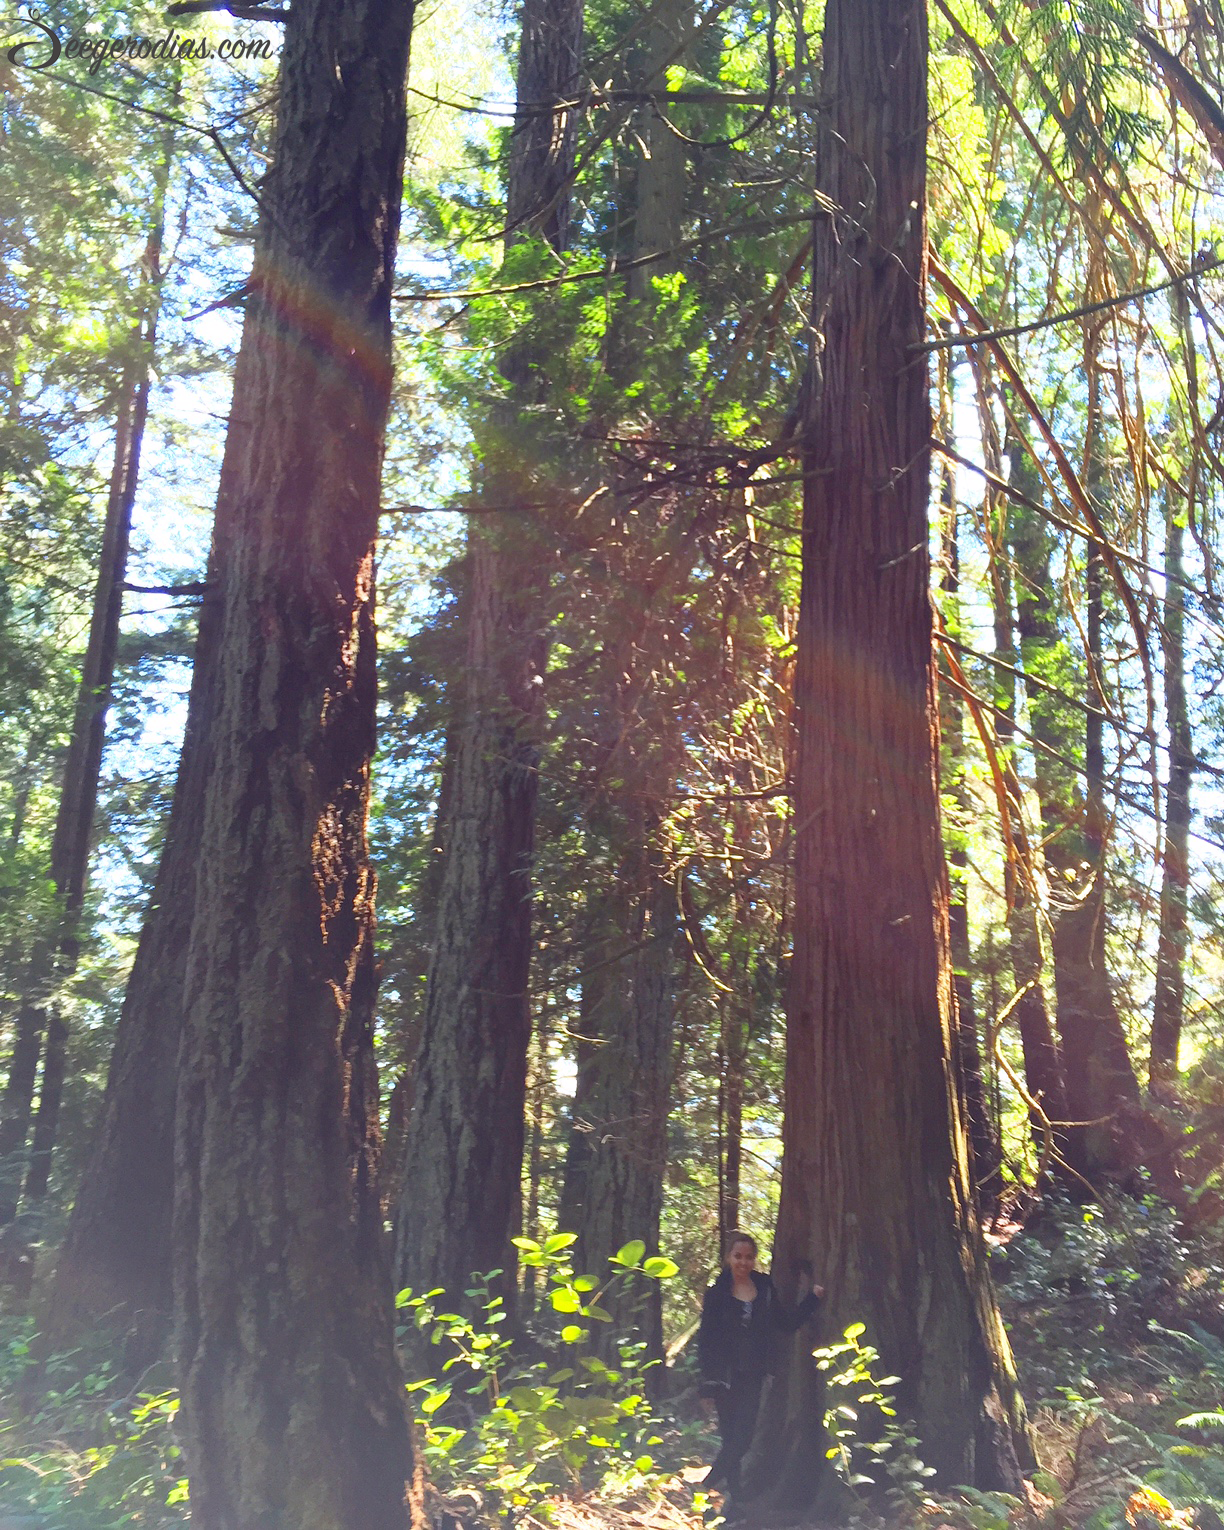 Vancouver rainforest.  Hiking is a great way to appreciate nature, unwind and still keep that body moving! Two awesome hiking spots we went to: Capilano Suspension Bridge and Lighthouse Park.